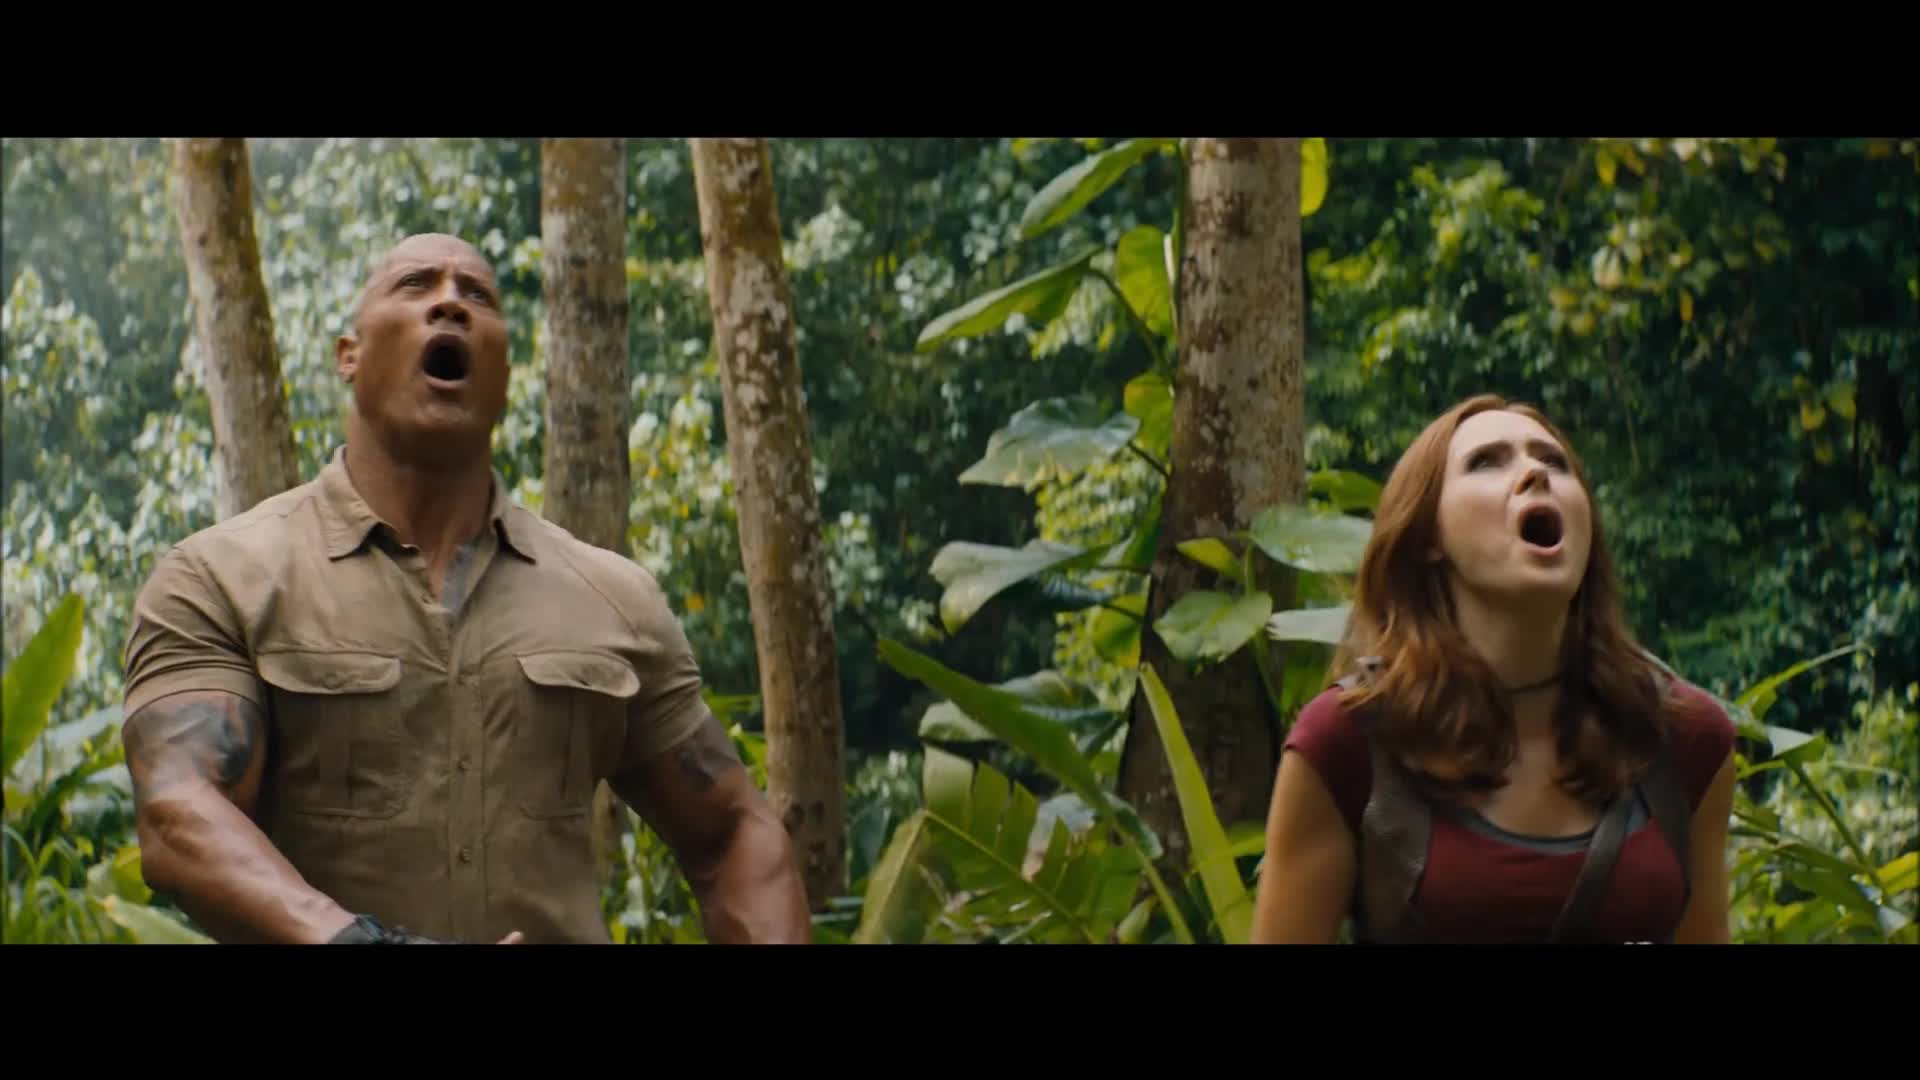 Official Trailer from Jumanji: The Next Level (2019)